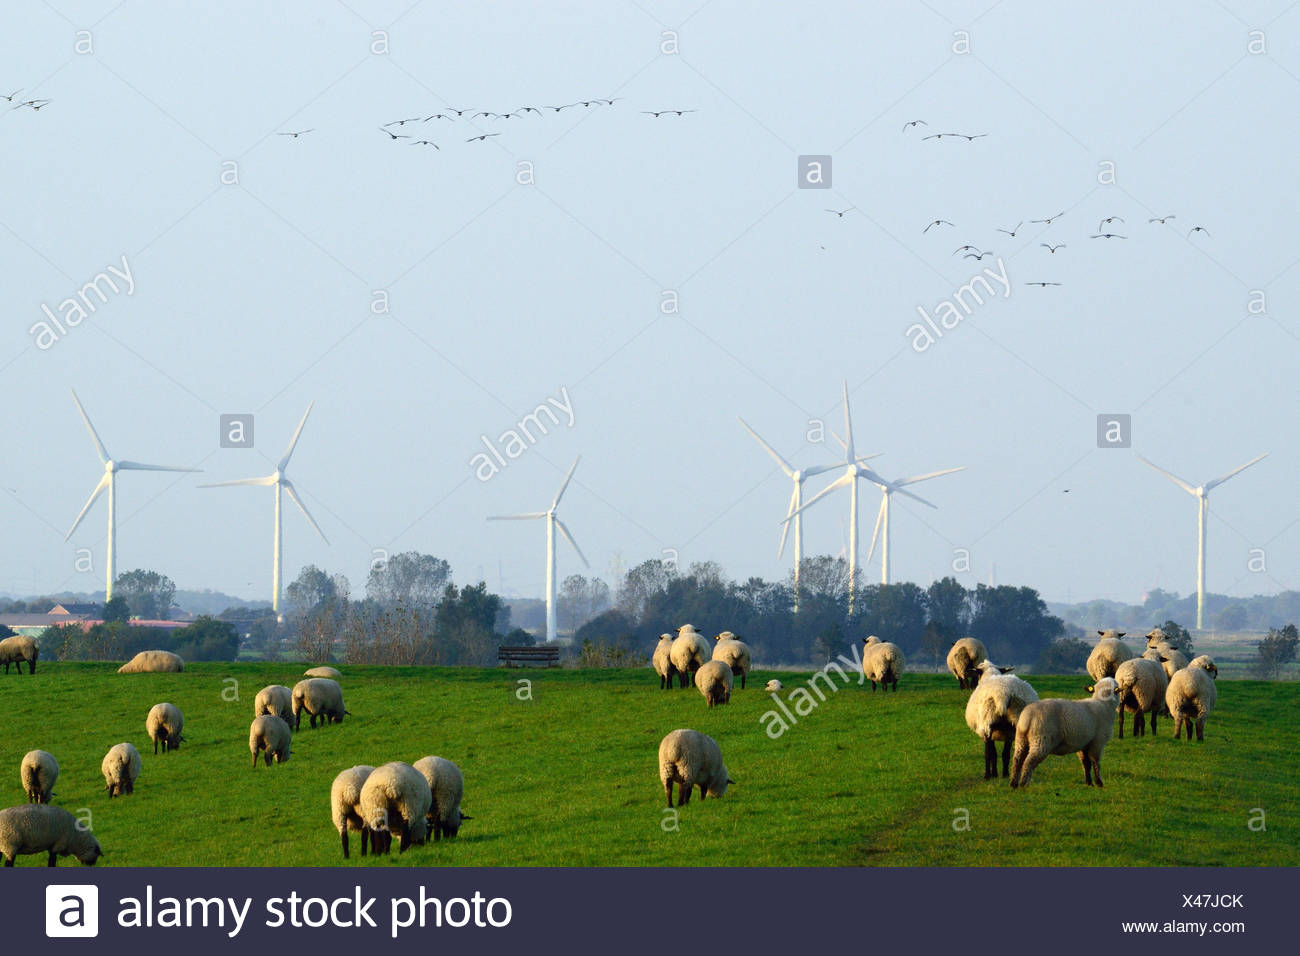 flock of sheep, wind wheels in the background and wild geese in the sky, Germany, Lower Saxony - Stock Image